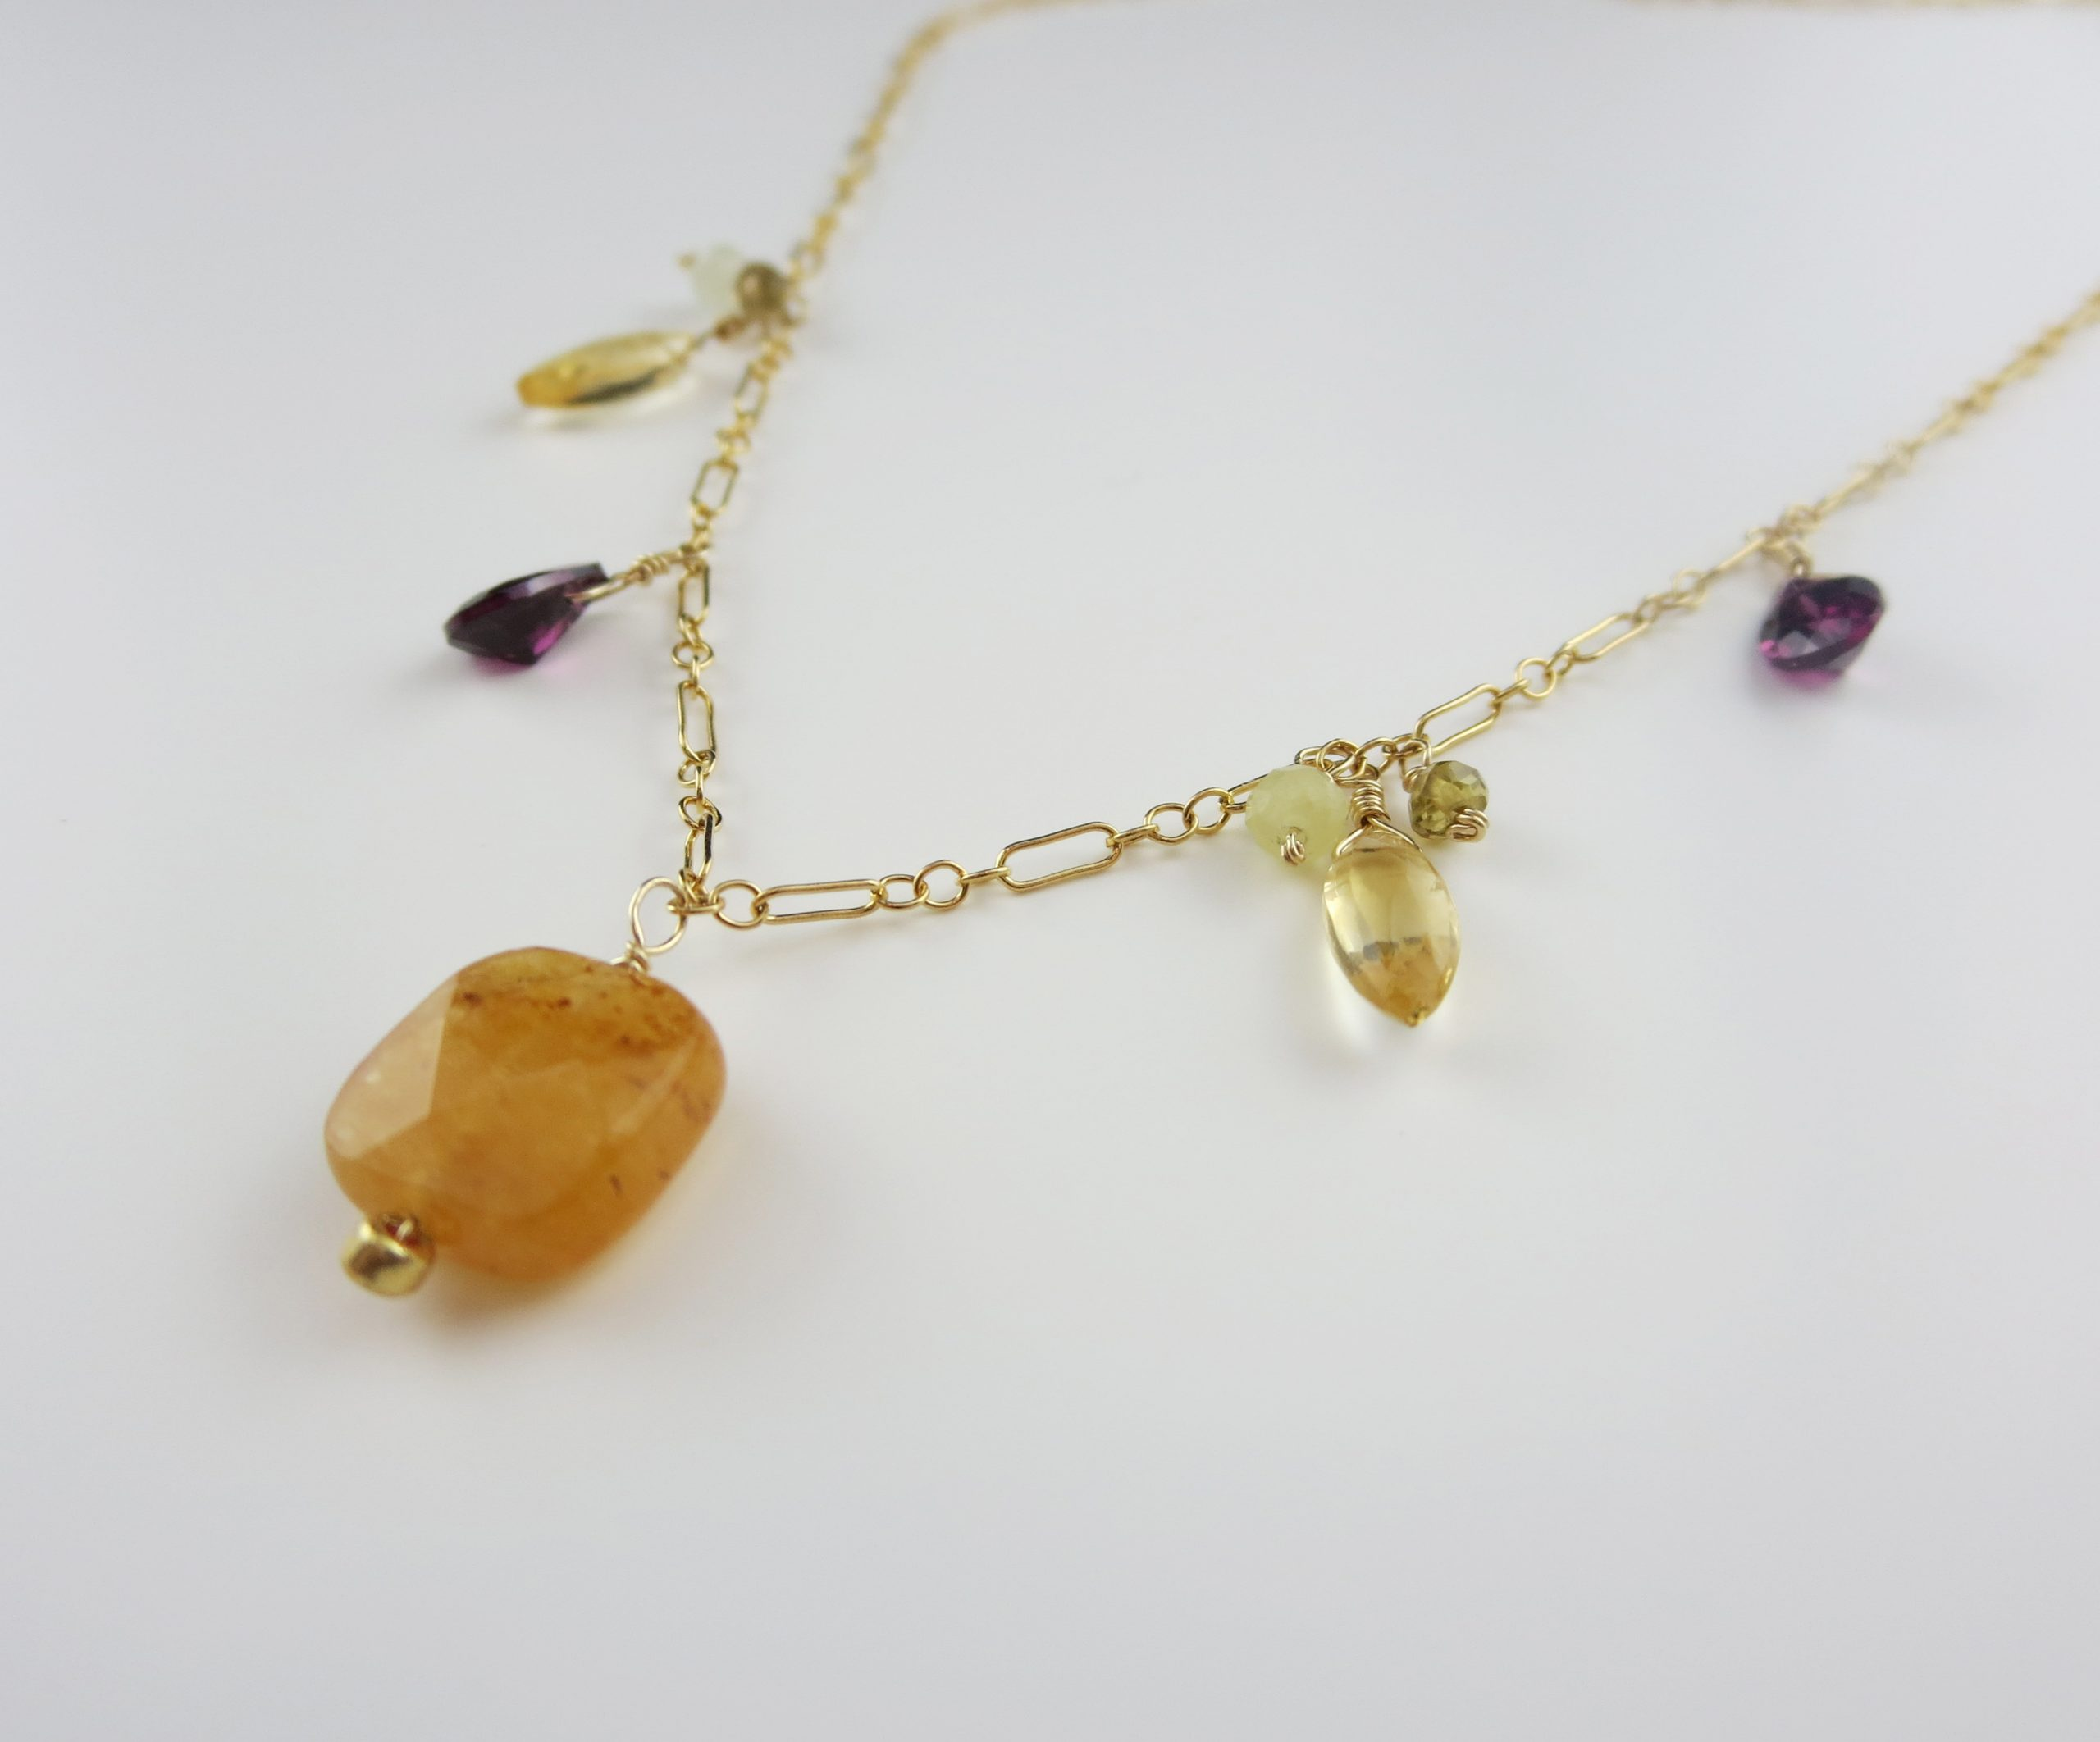 Carnelian and garnet necklace